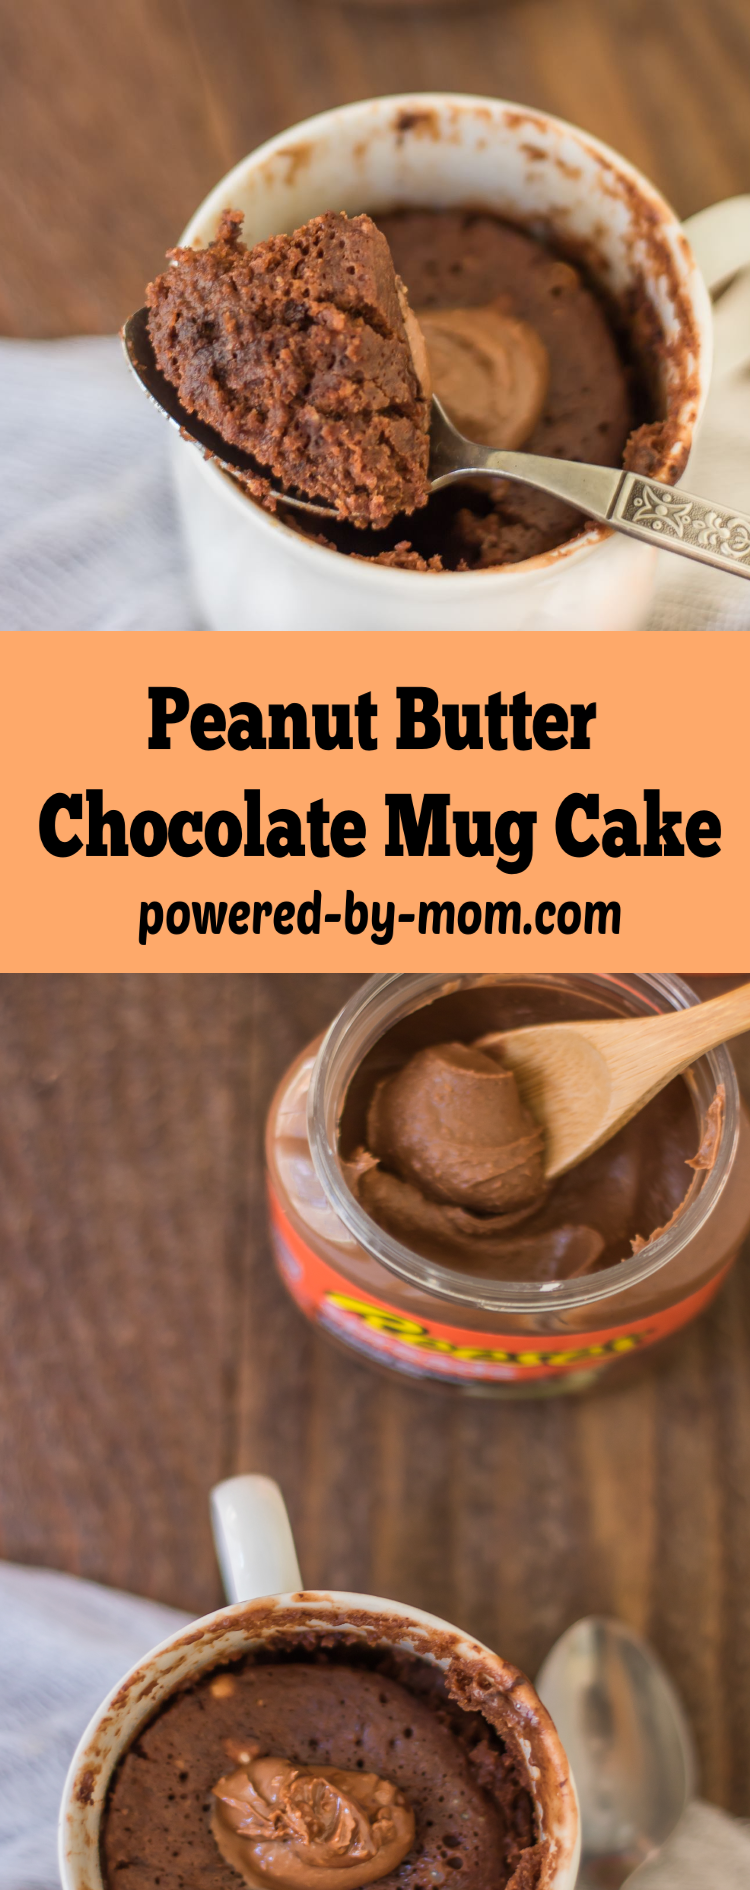 Chocolate Peanut Butter Mug Cake that is oh so yummy but quick & easy to make.